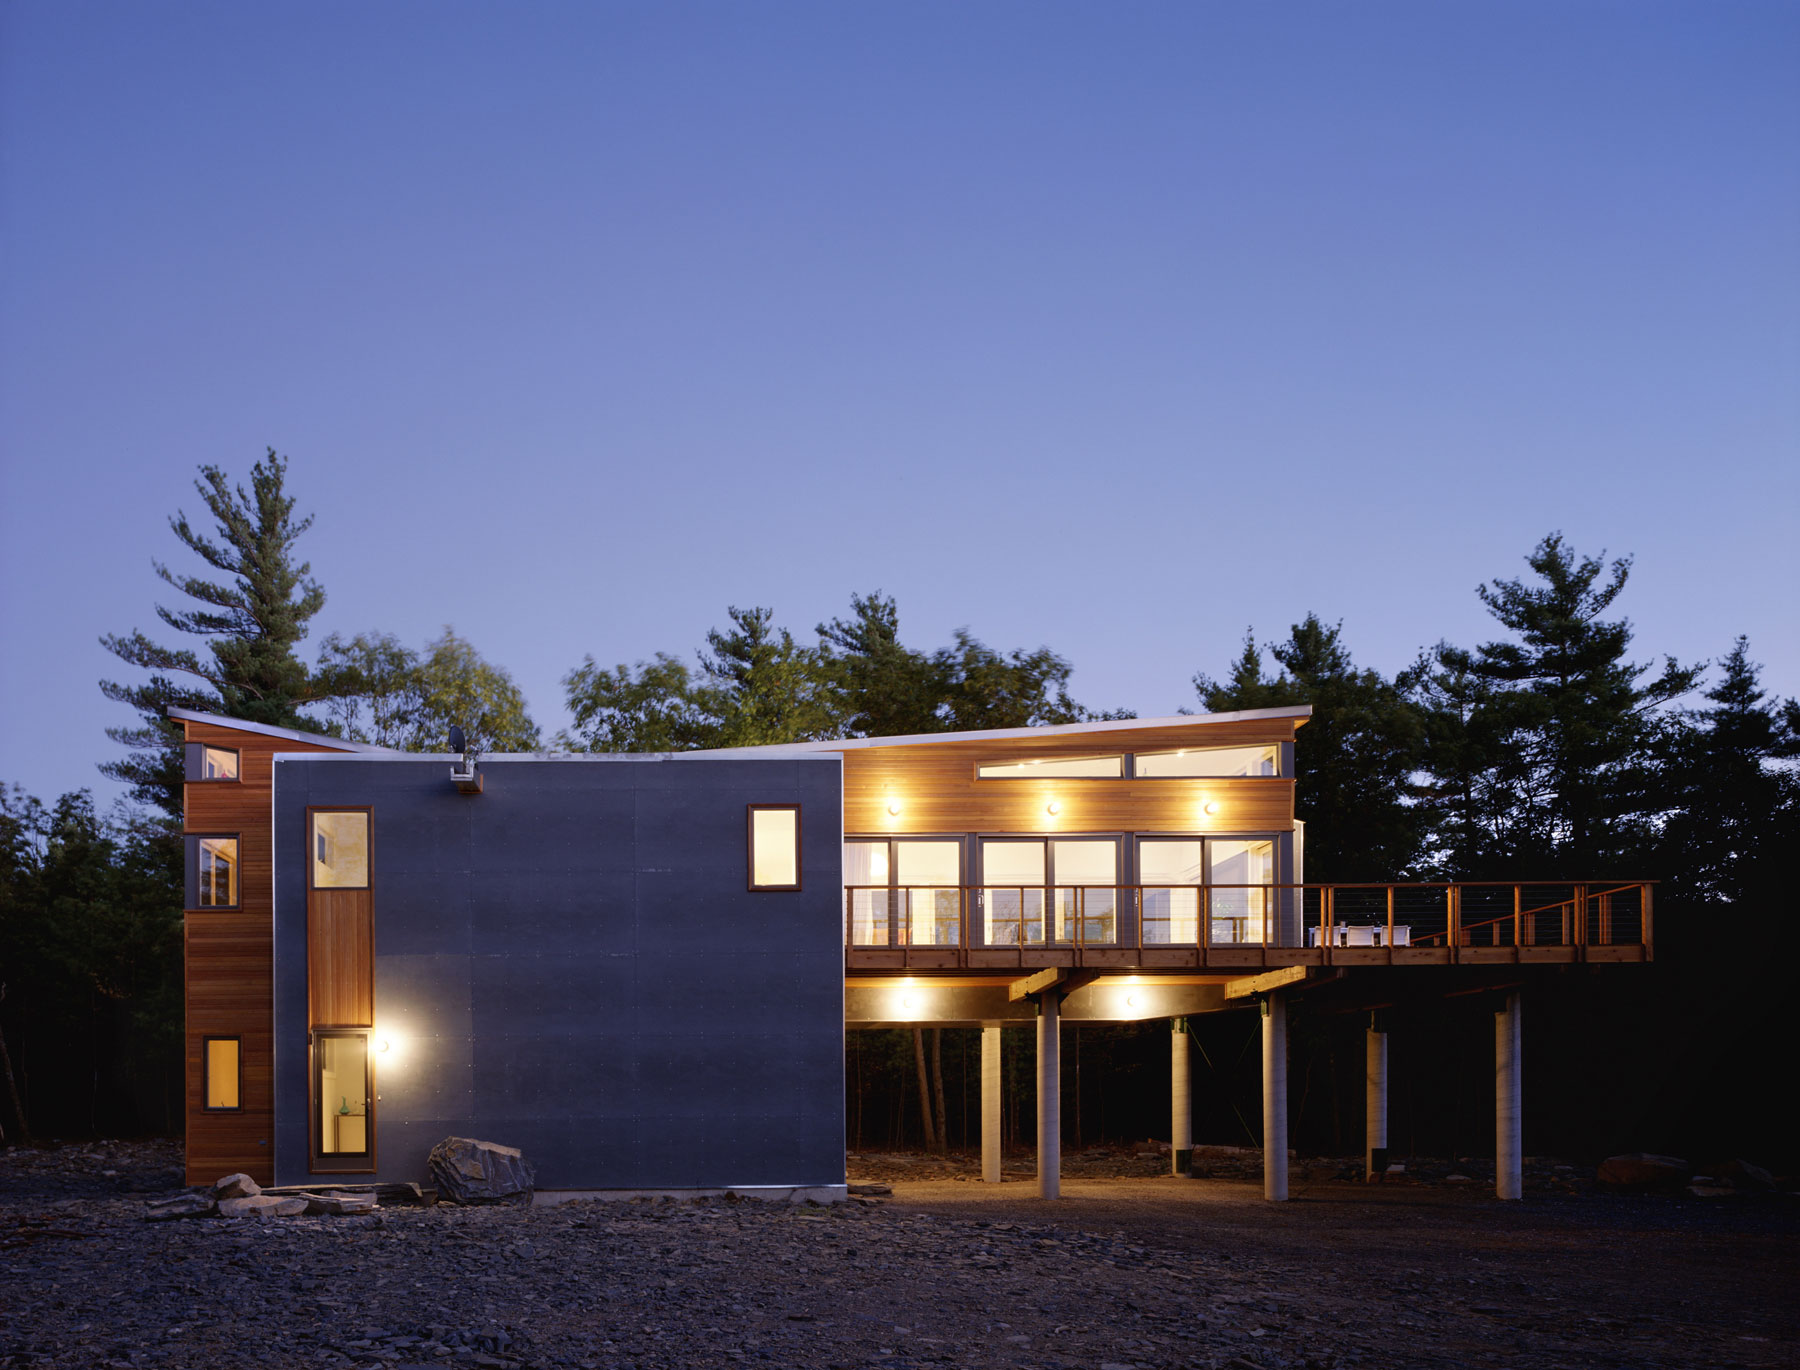 Prefab Mountain Retreat by Resolution: 4 Architecture